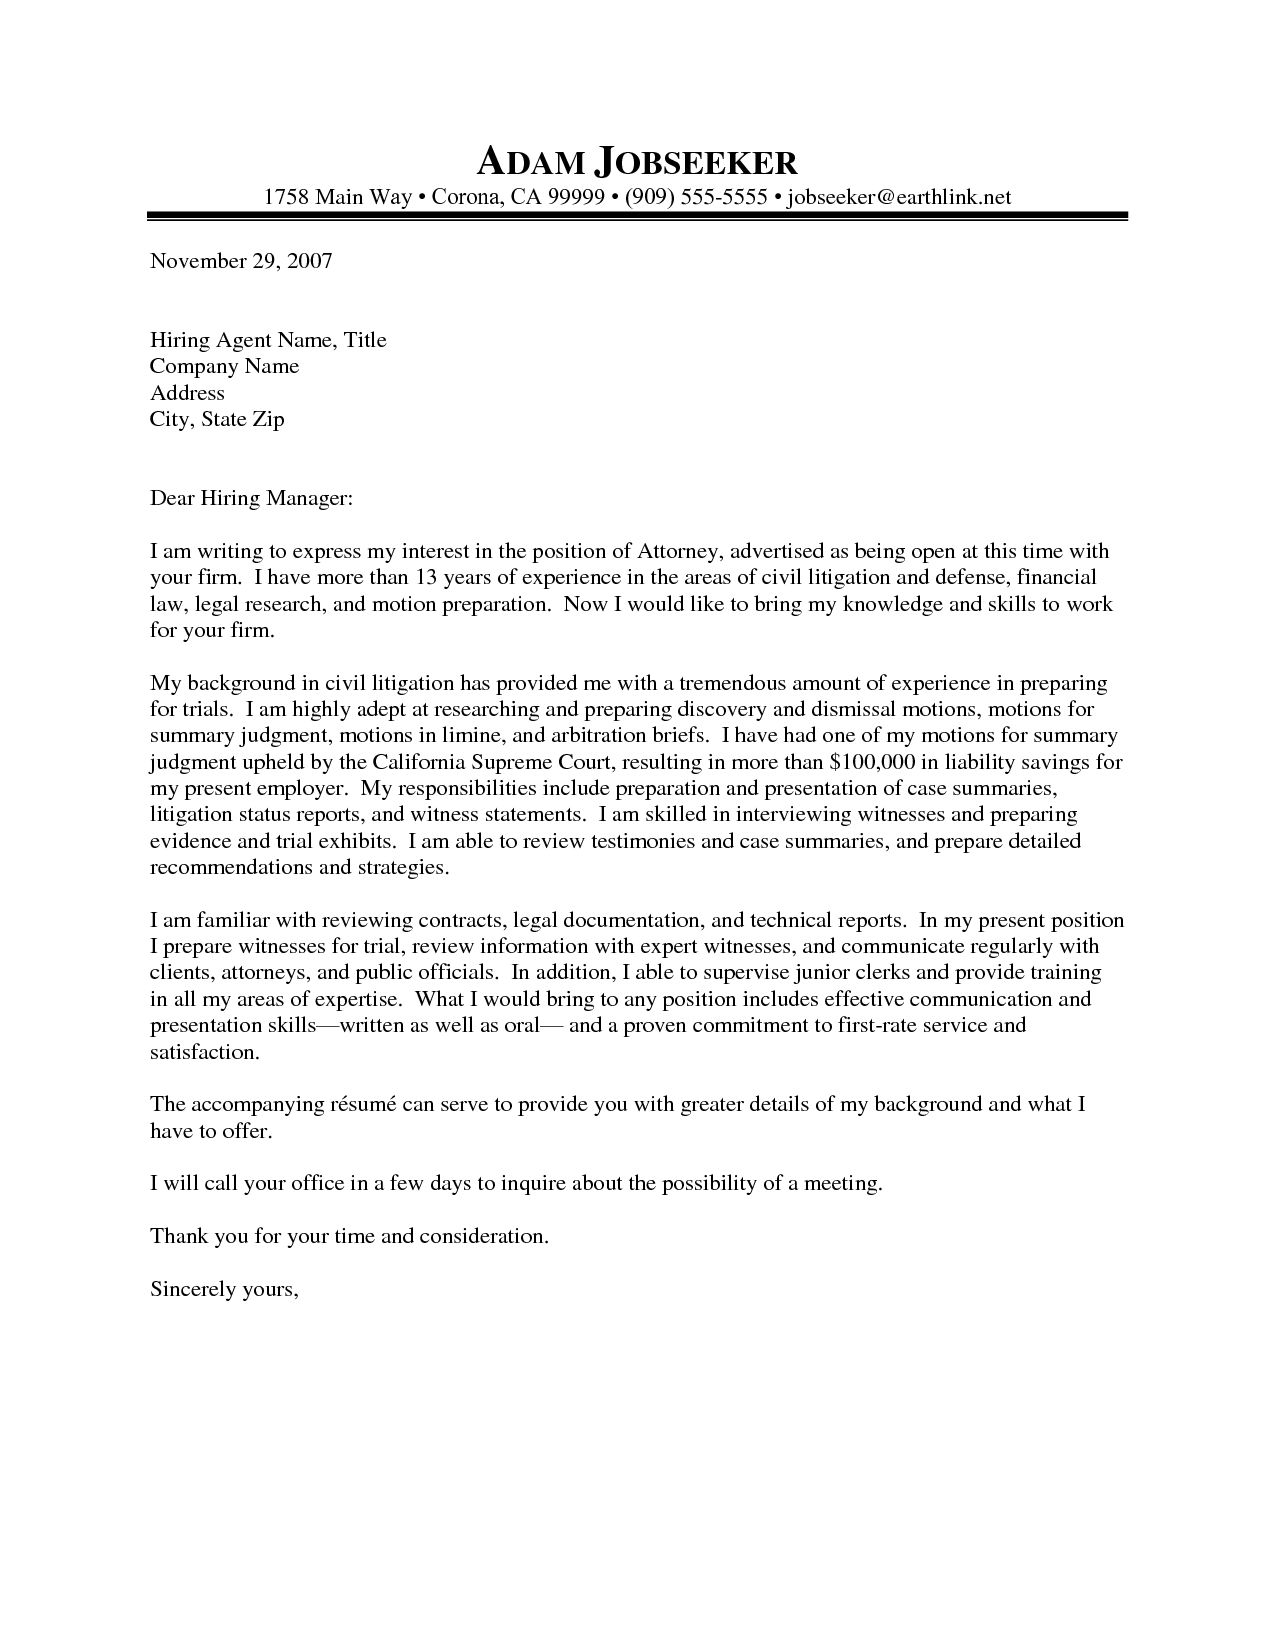 Law Firm Cover Letter Sample The Letter Sample Cover Letter Sample